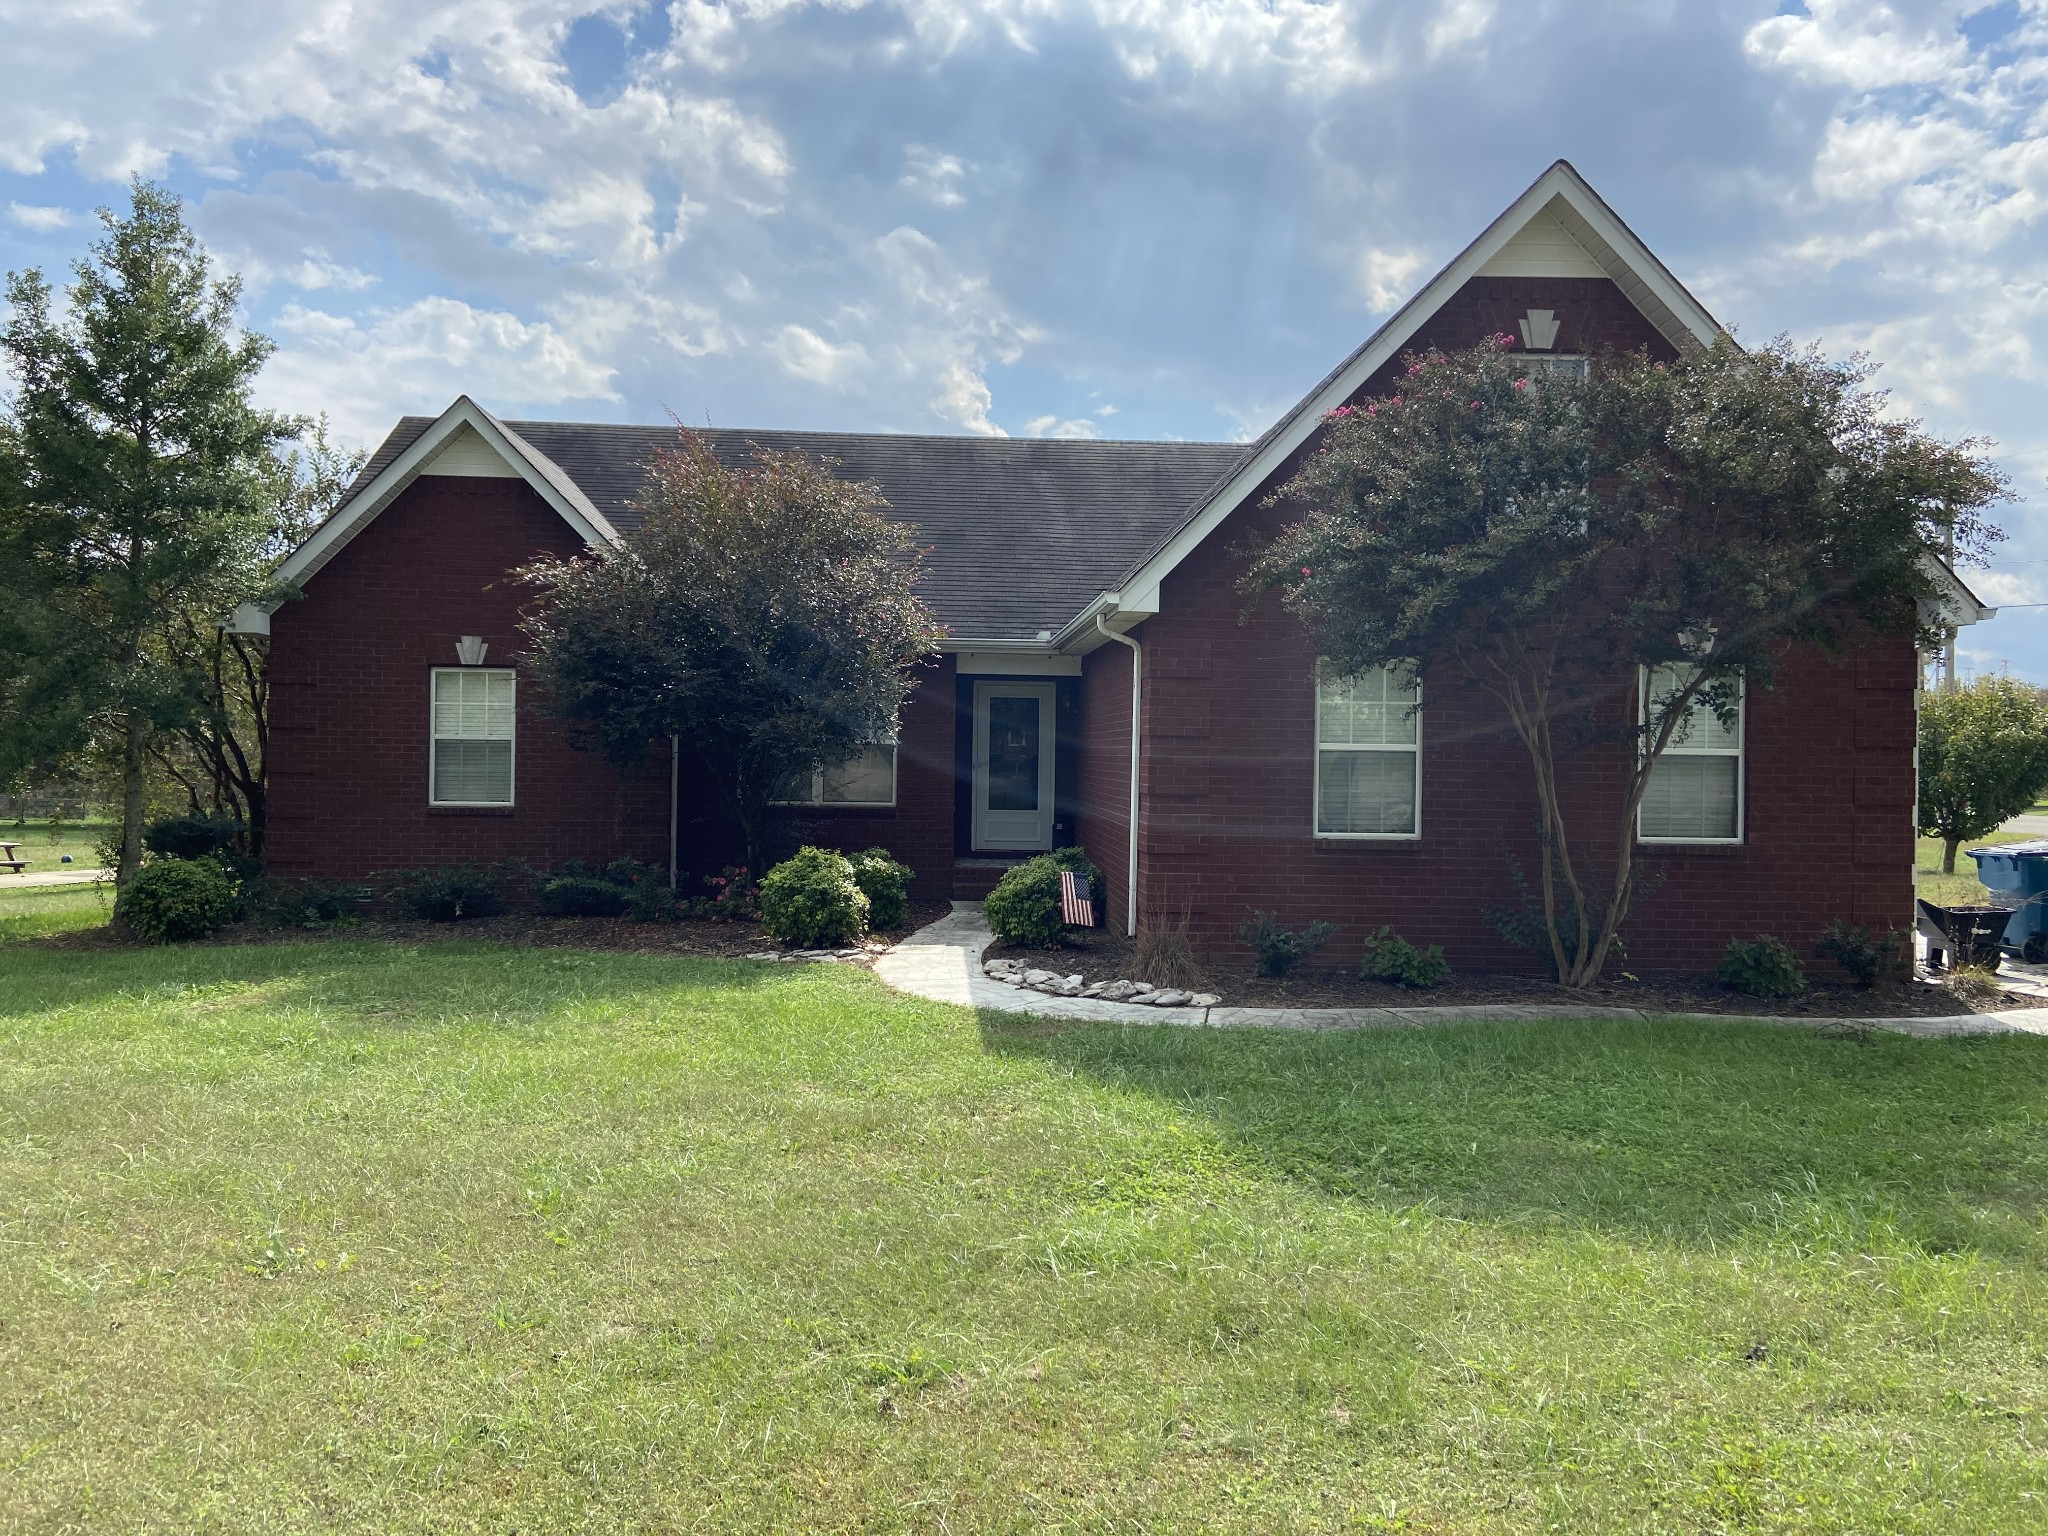 Welcome to Chapel Hills Subdivision. This home features: one level bedrooms & living area, tile floor in kitchen, bonus room over the garage, wainscoting in kitchen and dining room, a large yard on a corner lot Driveway with faux stones.